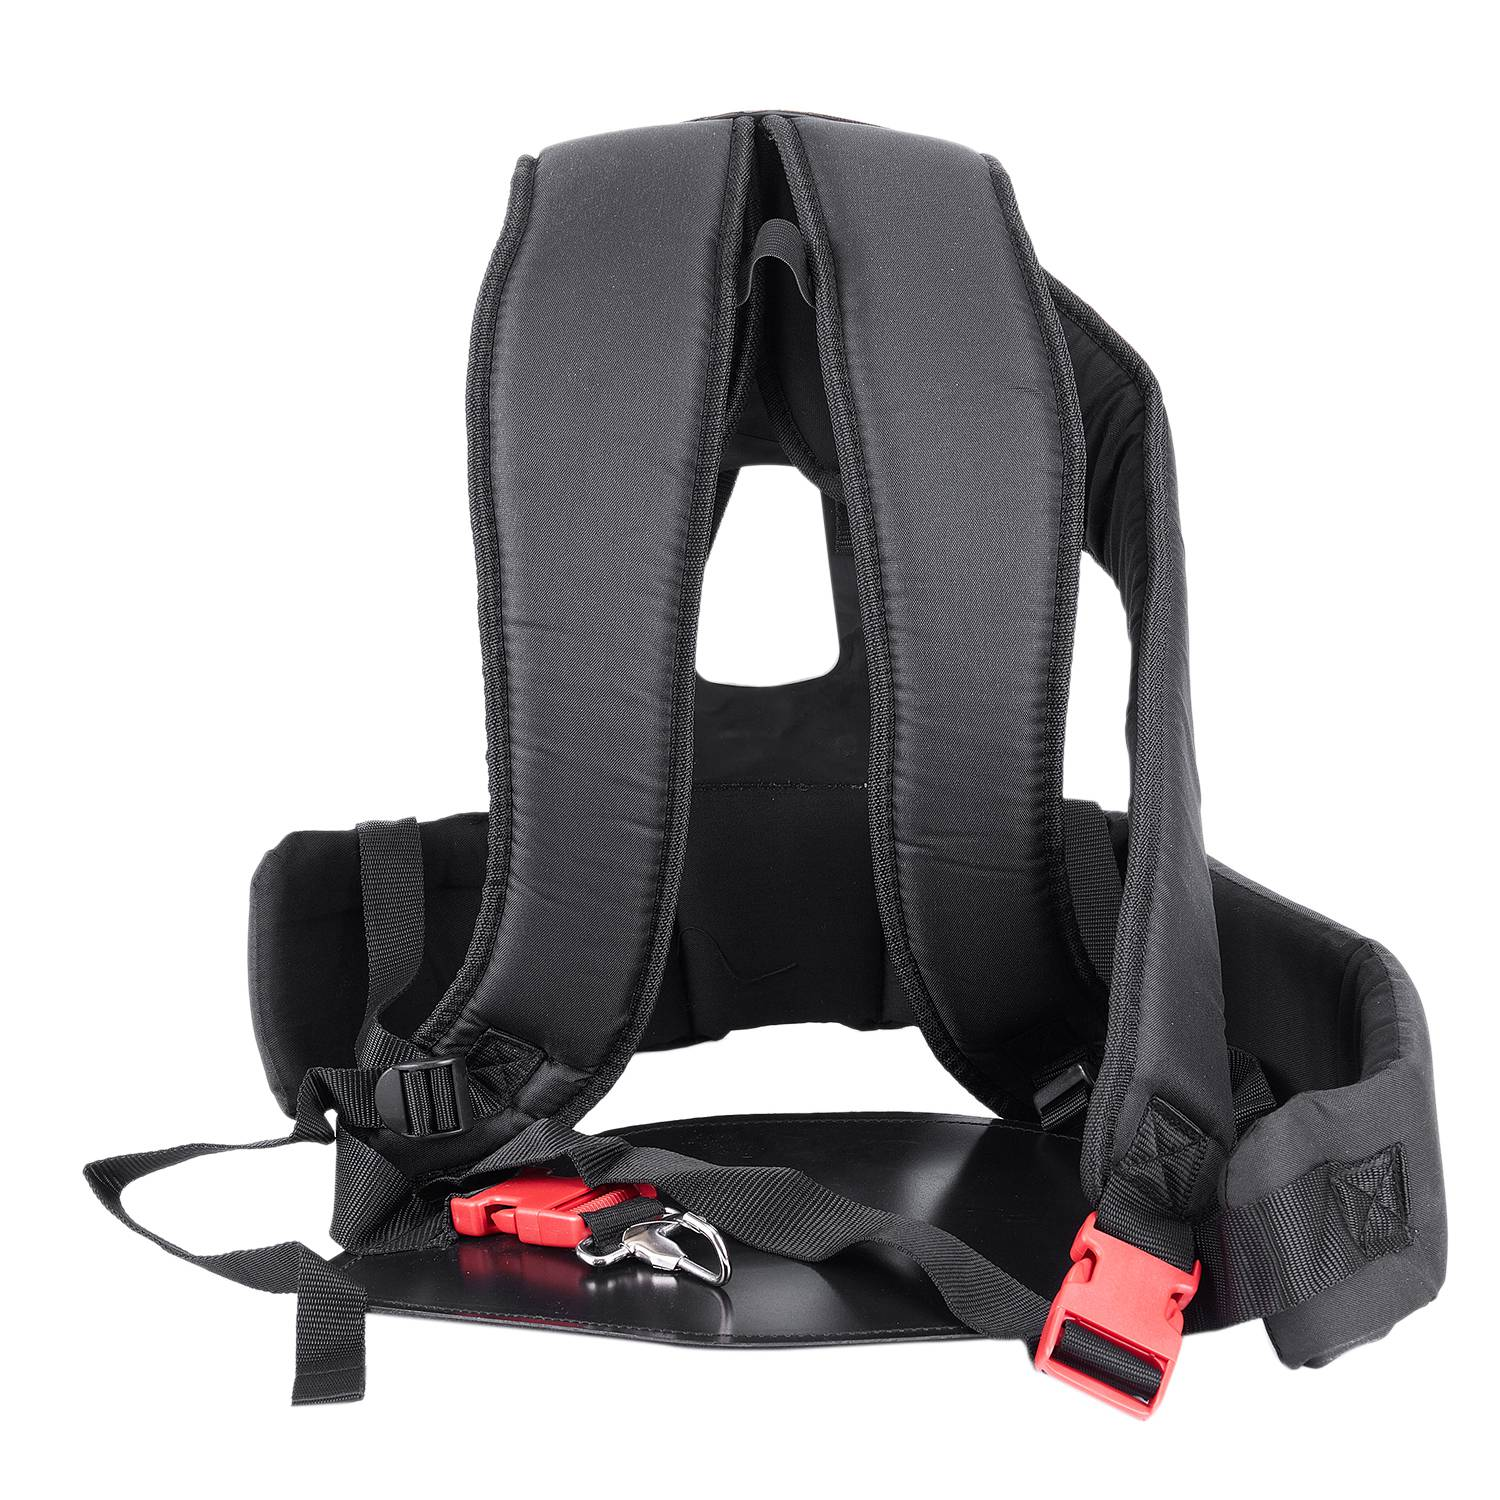 Promotion! Black Grass Cutter Accessories Double Shoulder Strap Harness For Brush Cutter With Confortable Shoulder Padsleg Prote